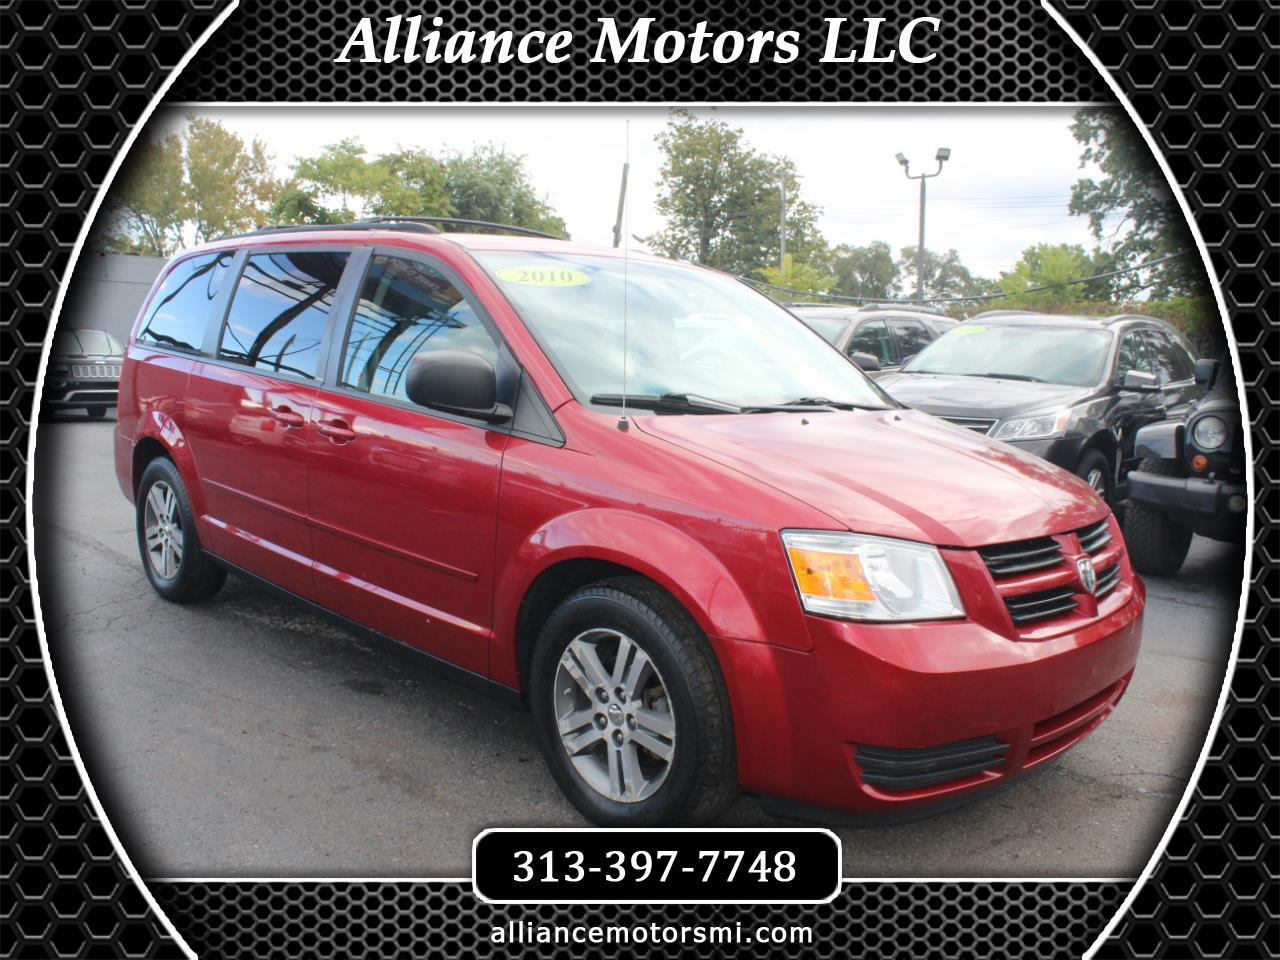 Dodge Grand Caravan 4dr Wgn SE 2010